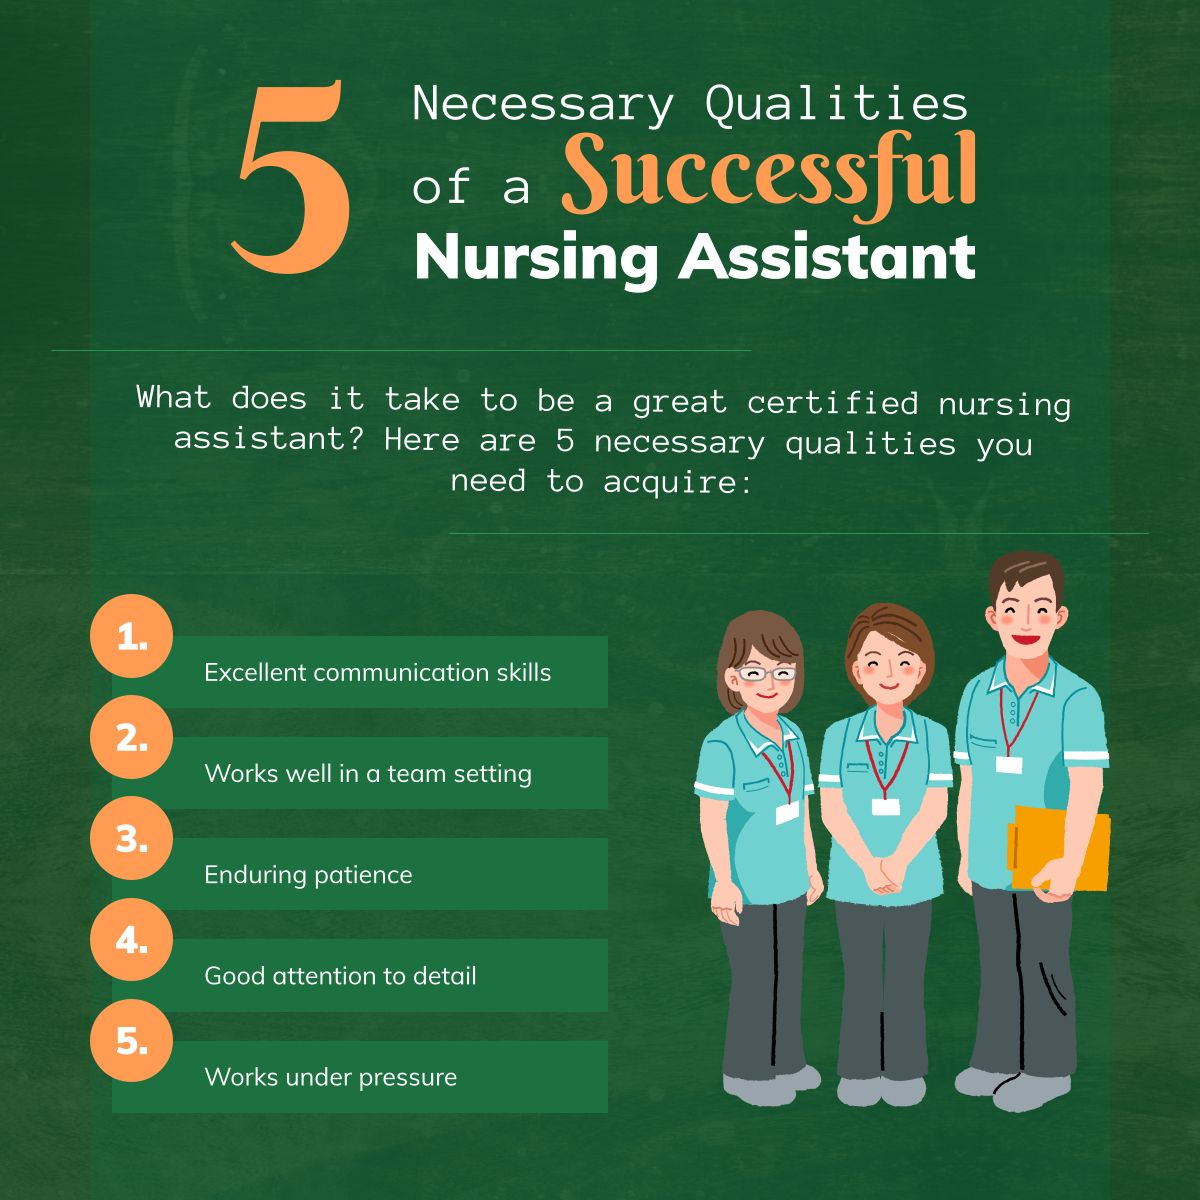 5 Necessary Qualities Of A Successful Nursing Assistant